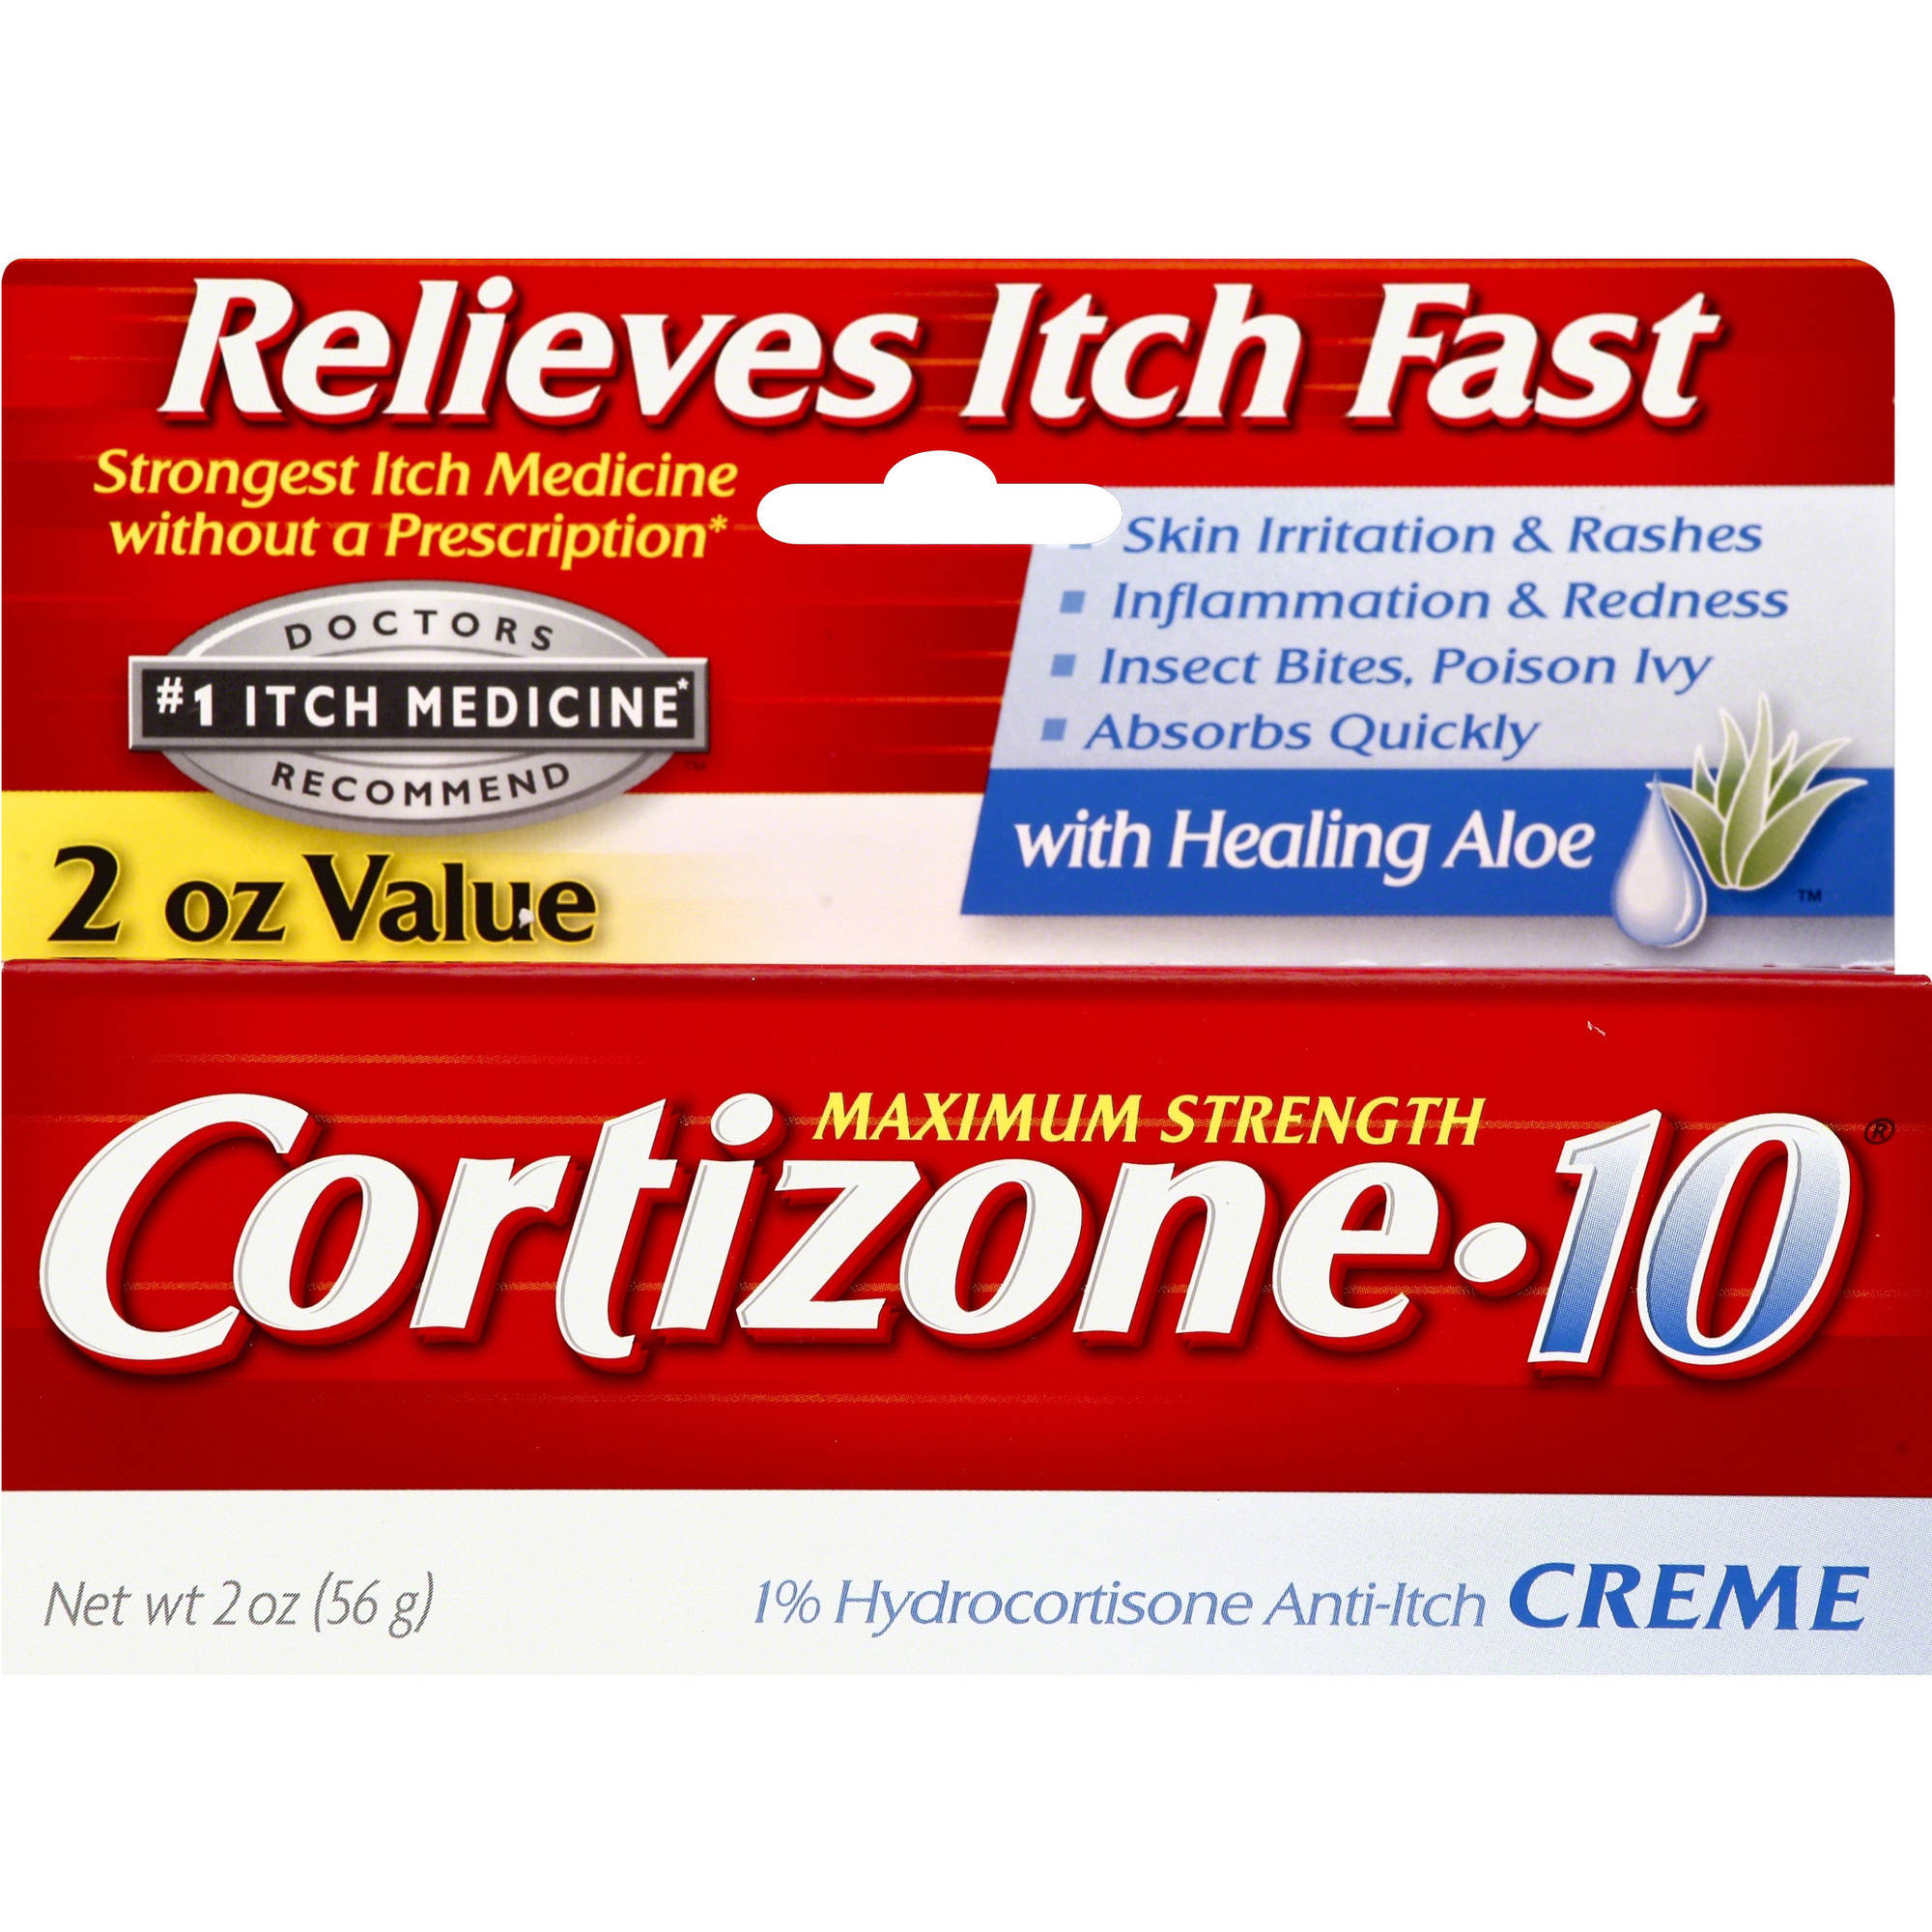 Cortizone 10 Maximum Strength 1% Hydrocortisone Anti-Itch